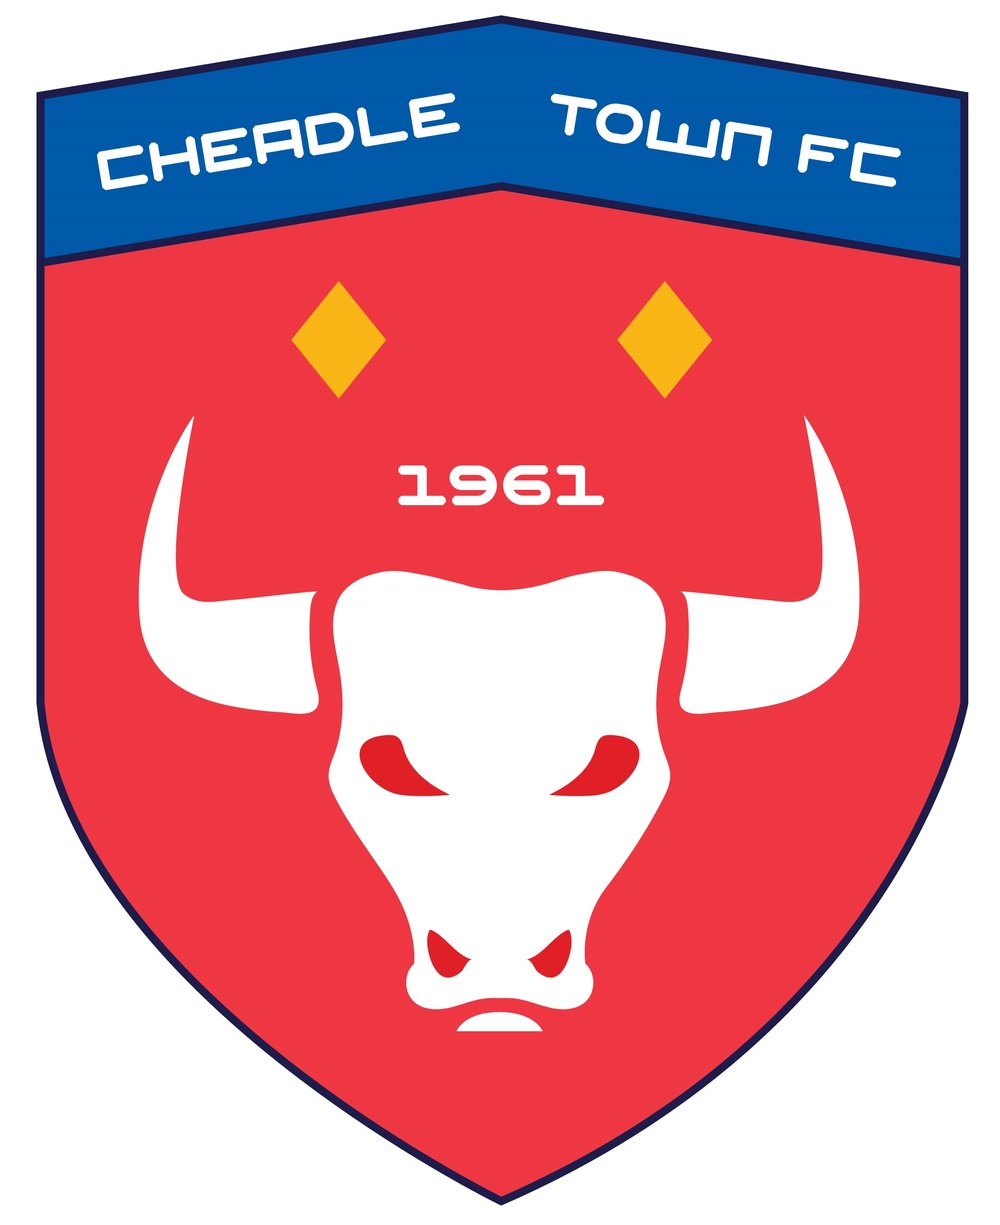 CTFC_BADGE.jpg